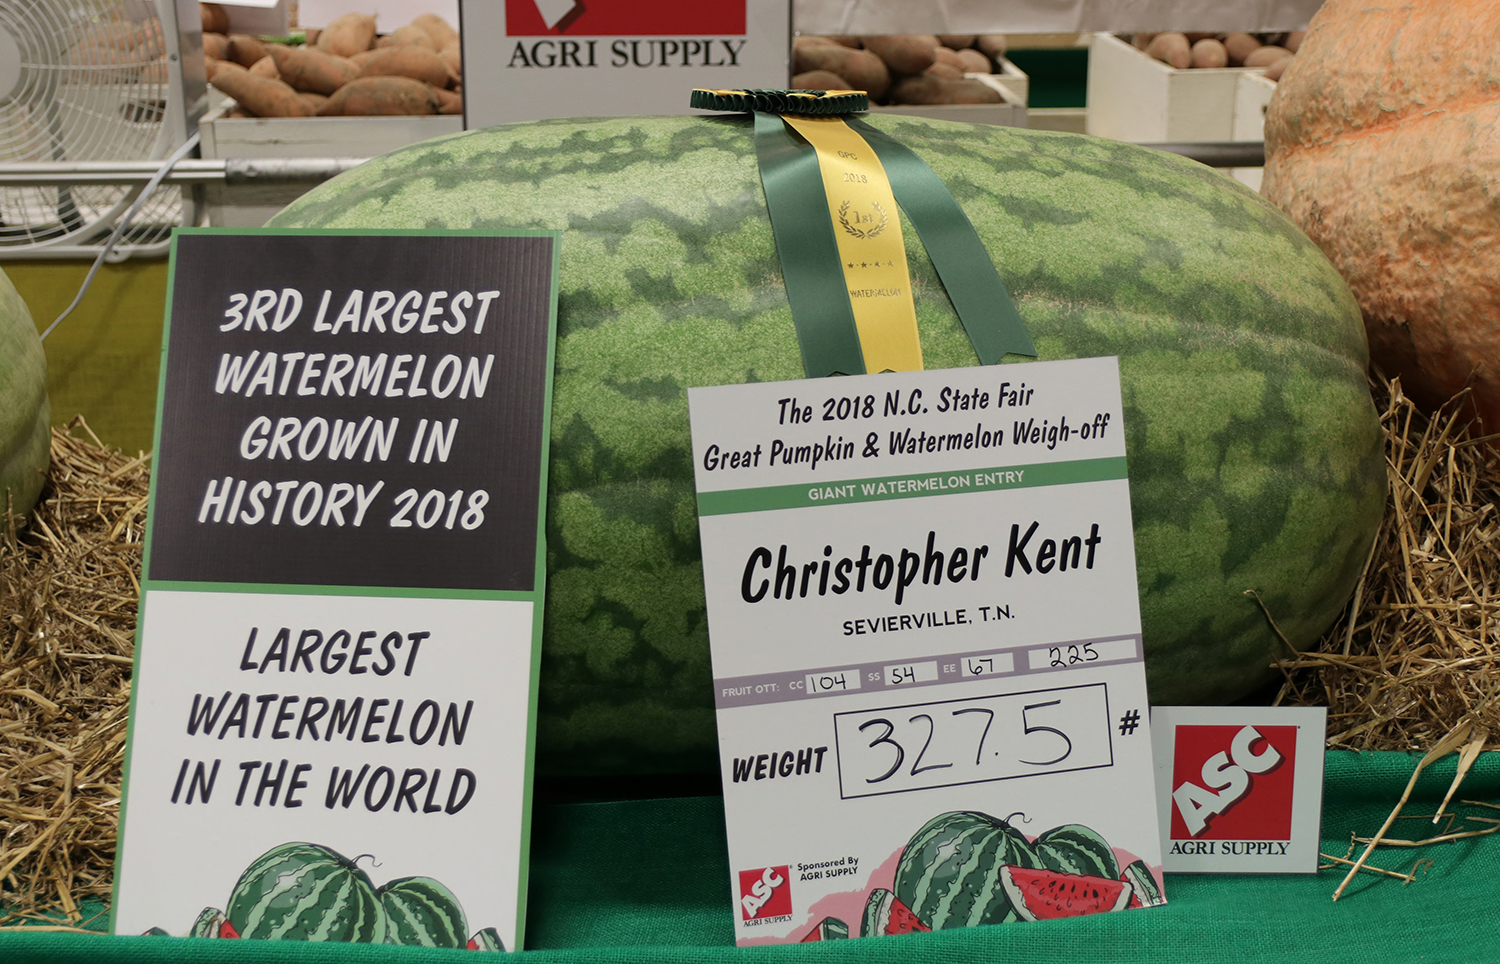 Third largest watermelon grown at the 2018 NC State Fair